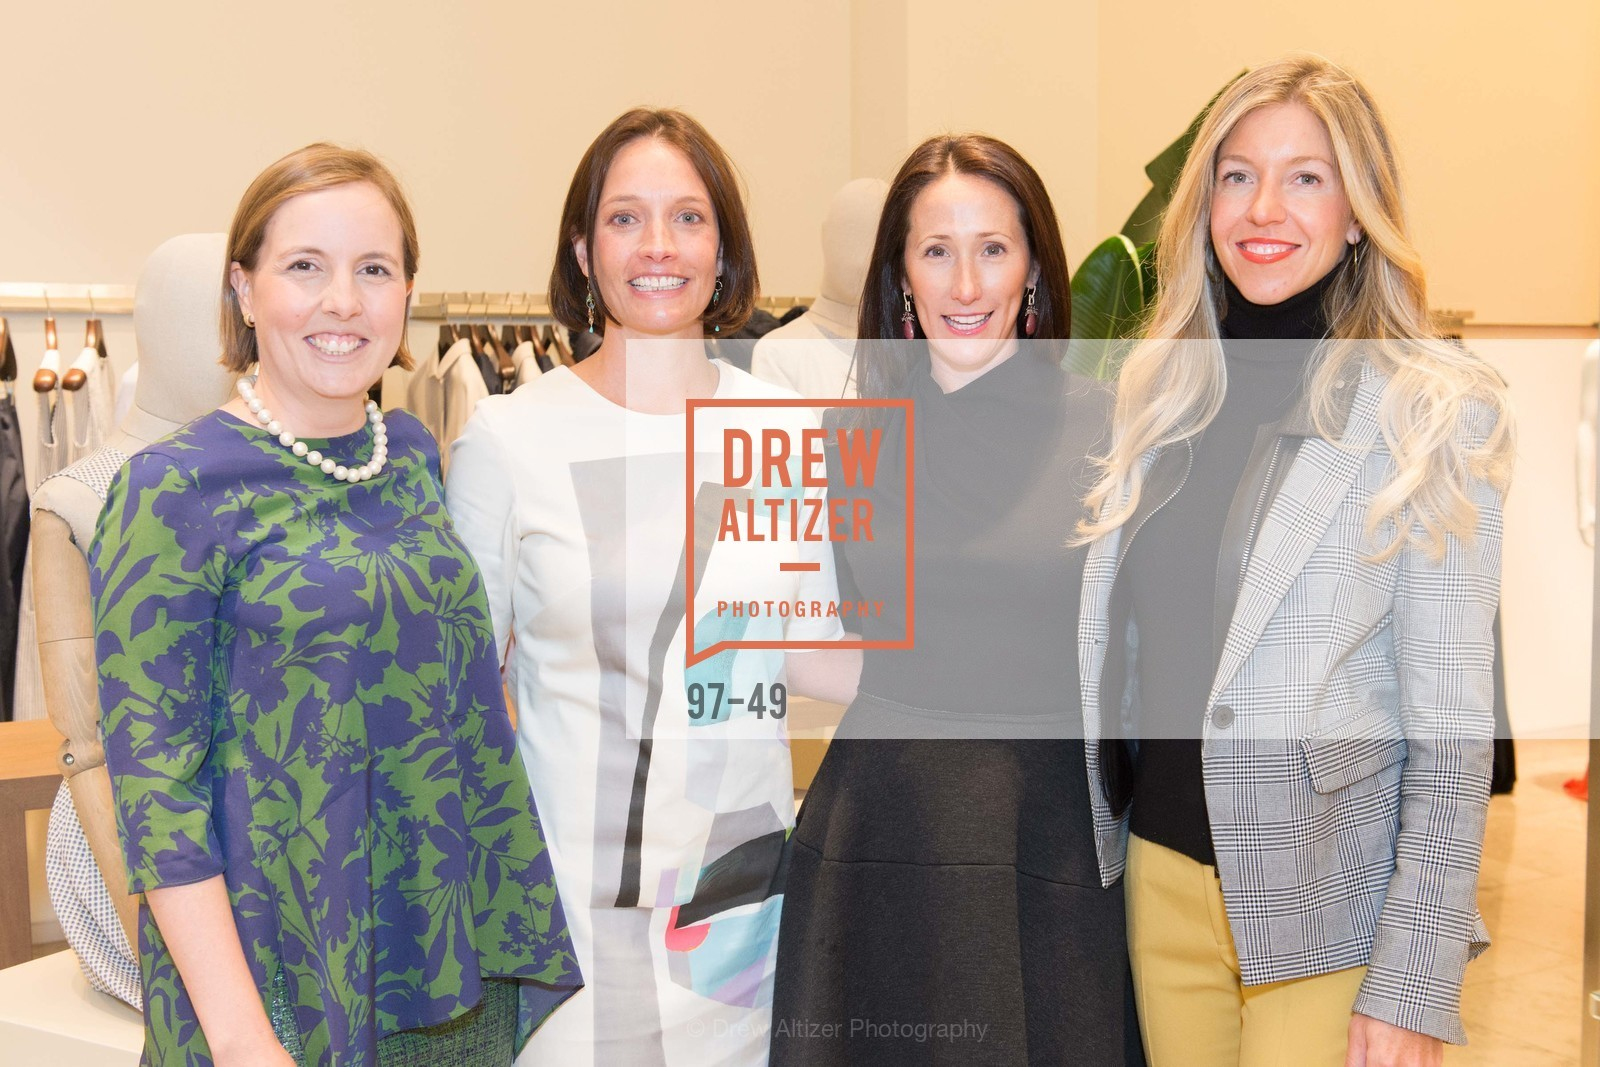 Katie Rothschild, Betsy McDermott, Kathryn Freeman, Jane Gruber, Luncheon Hosted by Max Mara, Max Mara. 175 Post St, San Francisco, CA 94108, April 21st, 2015,Drew Altizer, Drew Altizer Photography, full-service agency, private events, San Francisco photographer, photographer california